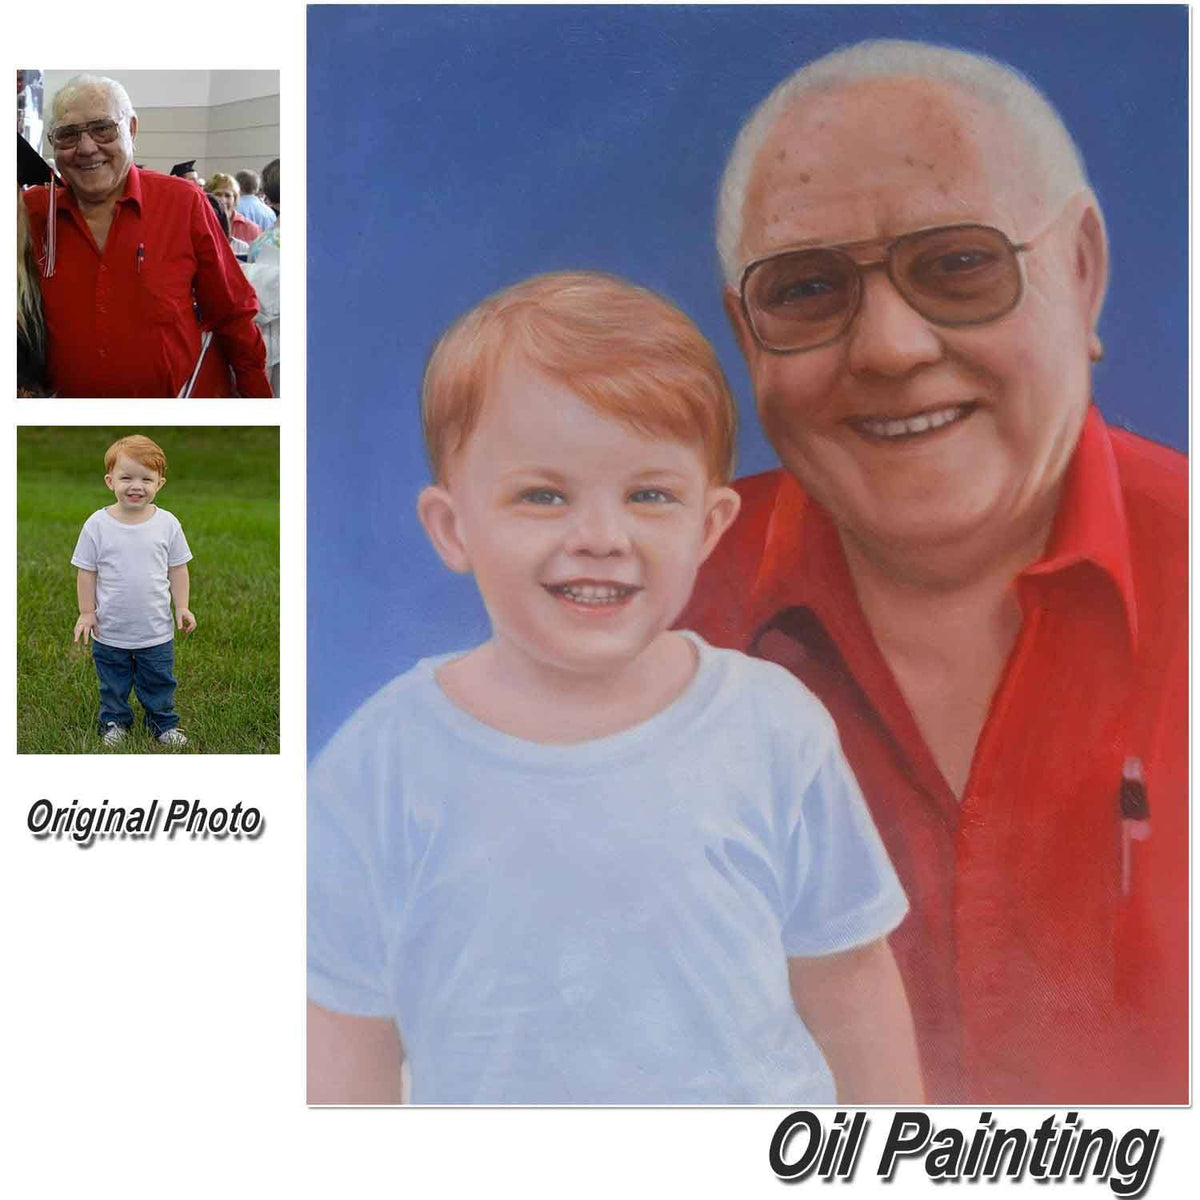 Custom Hand Painted Parents & Children Portrait Oil Painting Home & Garden > Decor > Artwork > Posters, Prints, & Visual Artwork ArtToyourlife